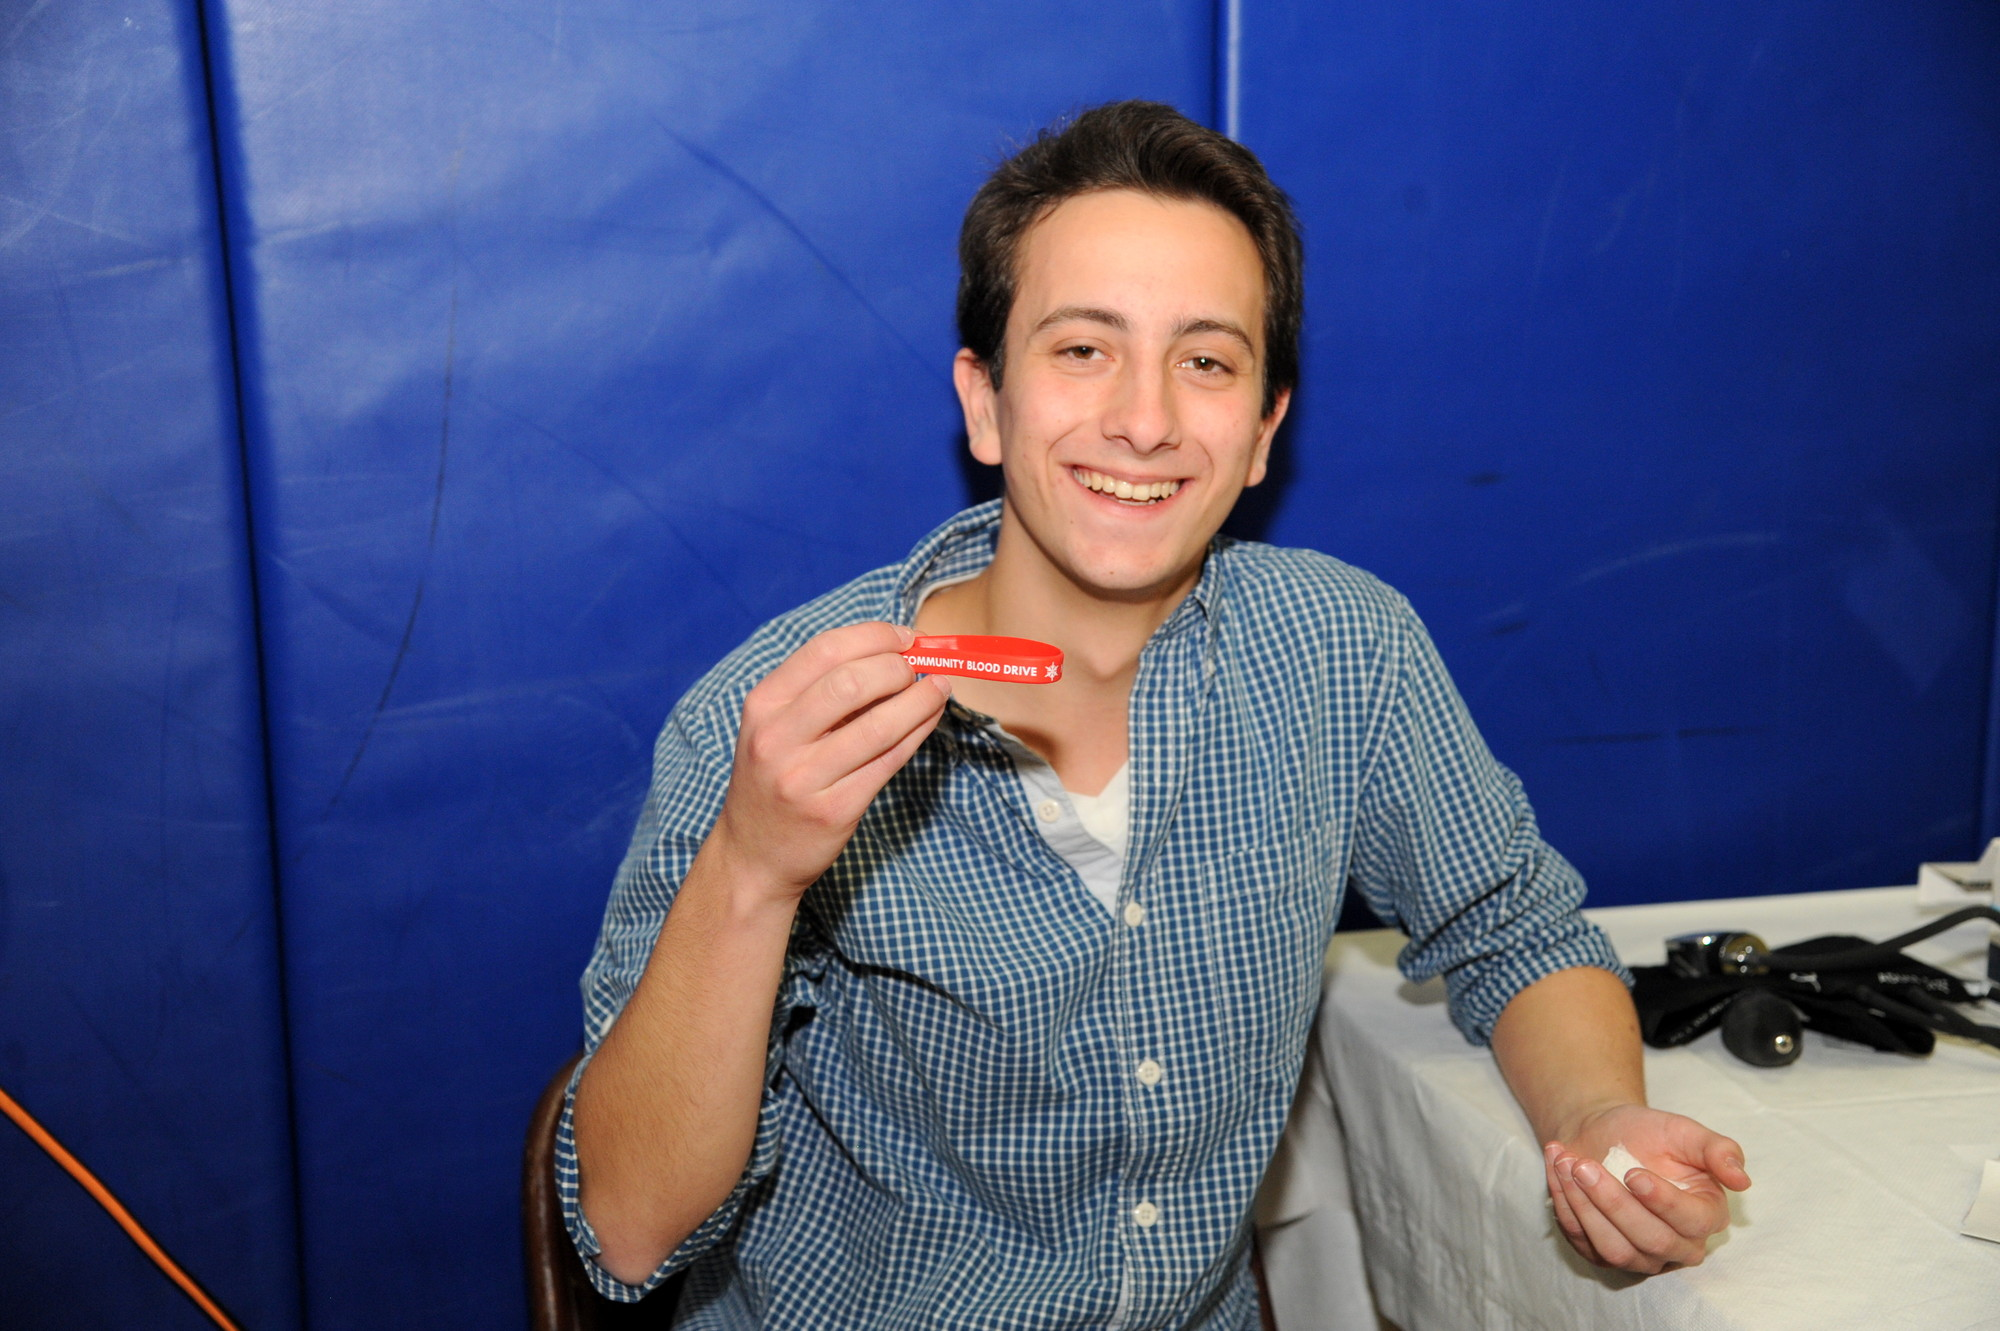 David Stein, 17, shows his bracelet for Super Bowl tickets.